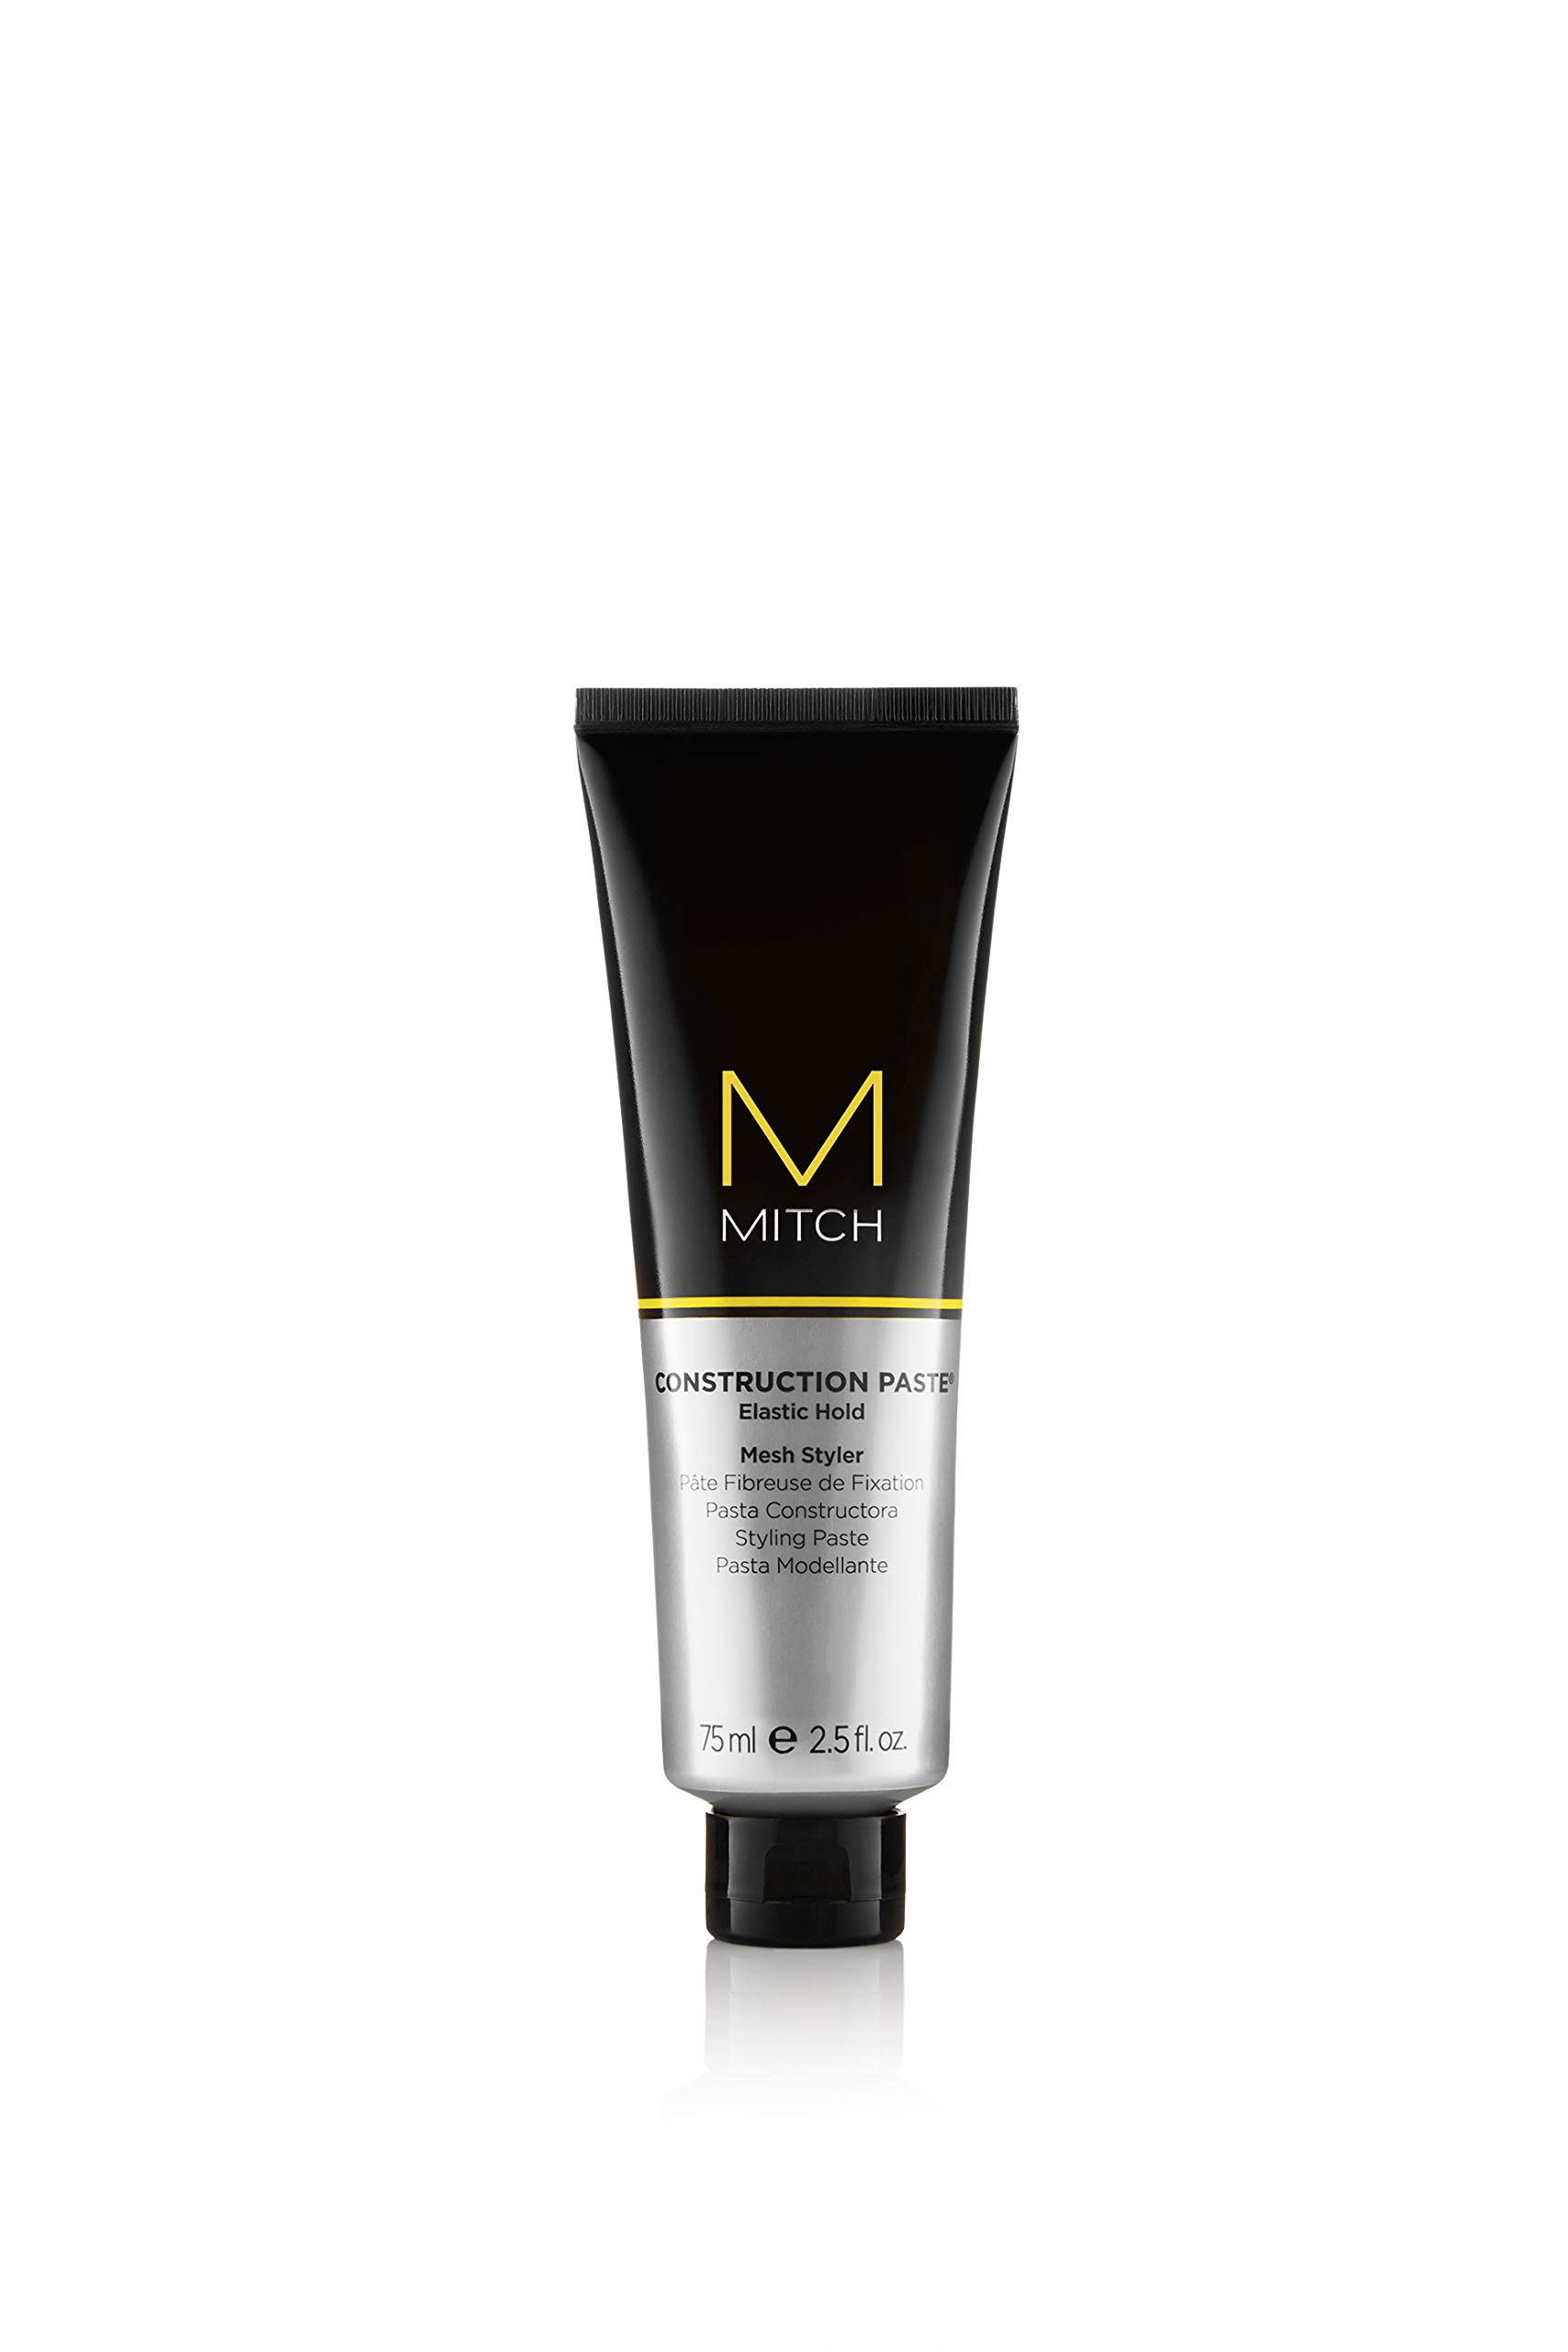 Paul Mitchell Mitch Construction Paste Elastic Hold Mesh Styler for Men, 2.5 Ounce